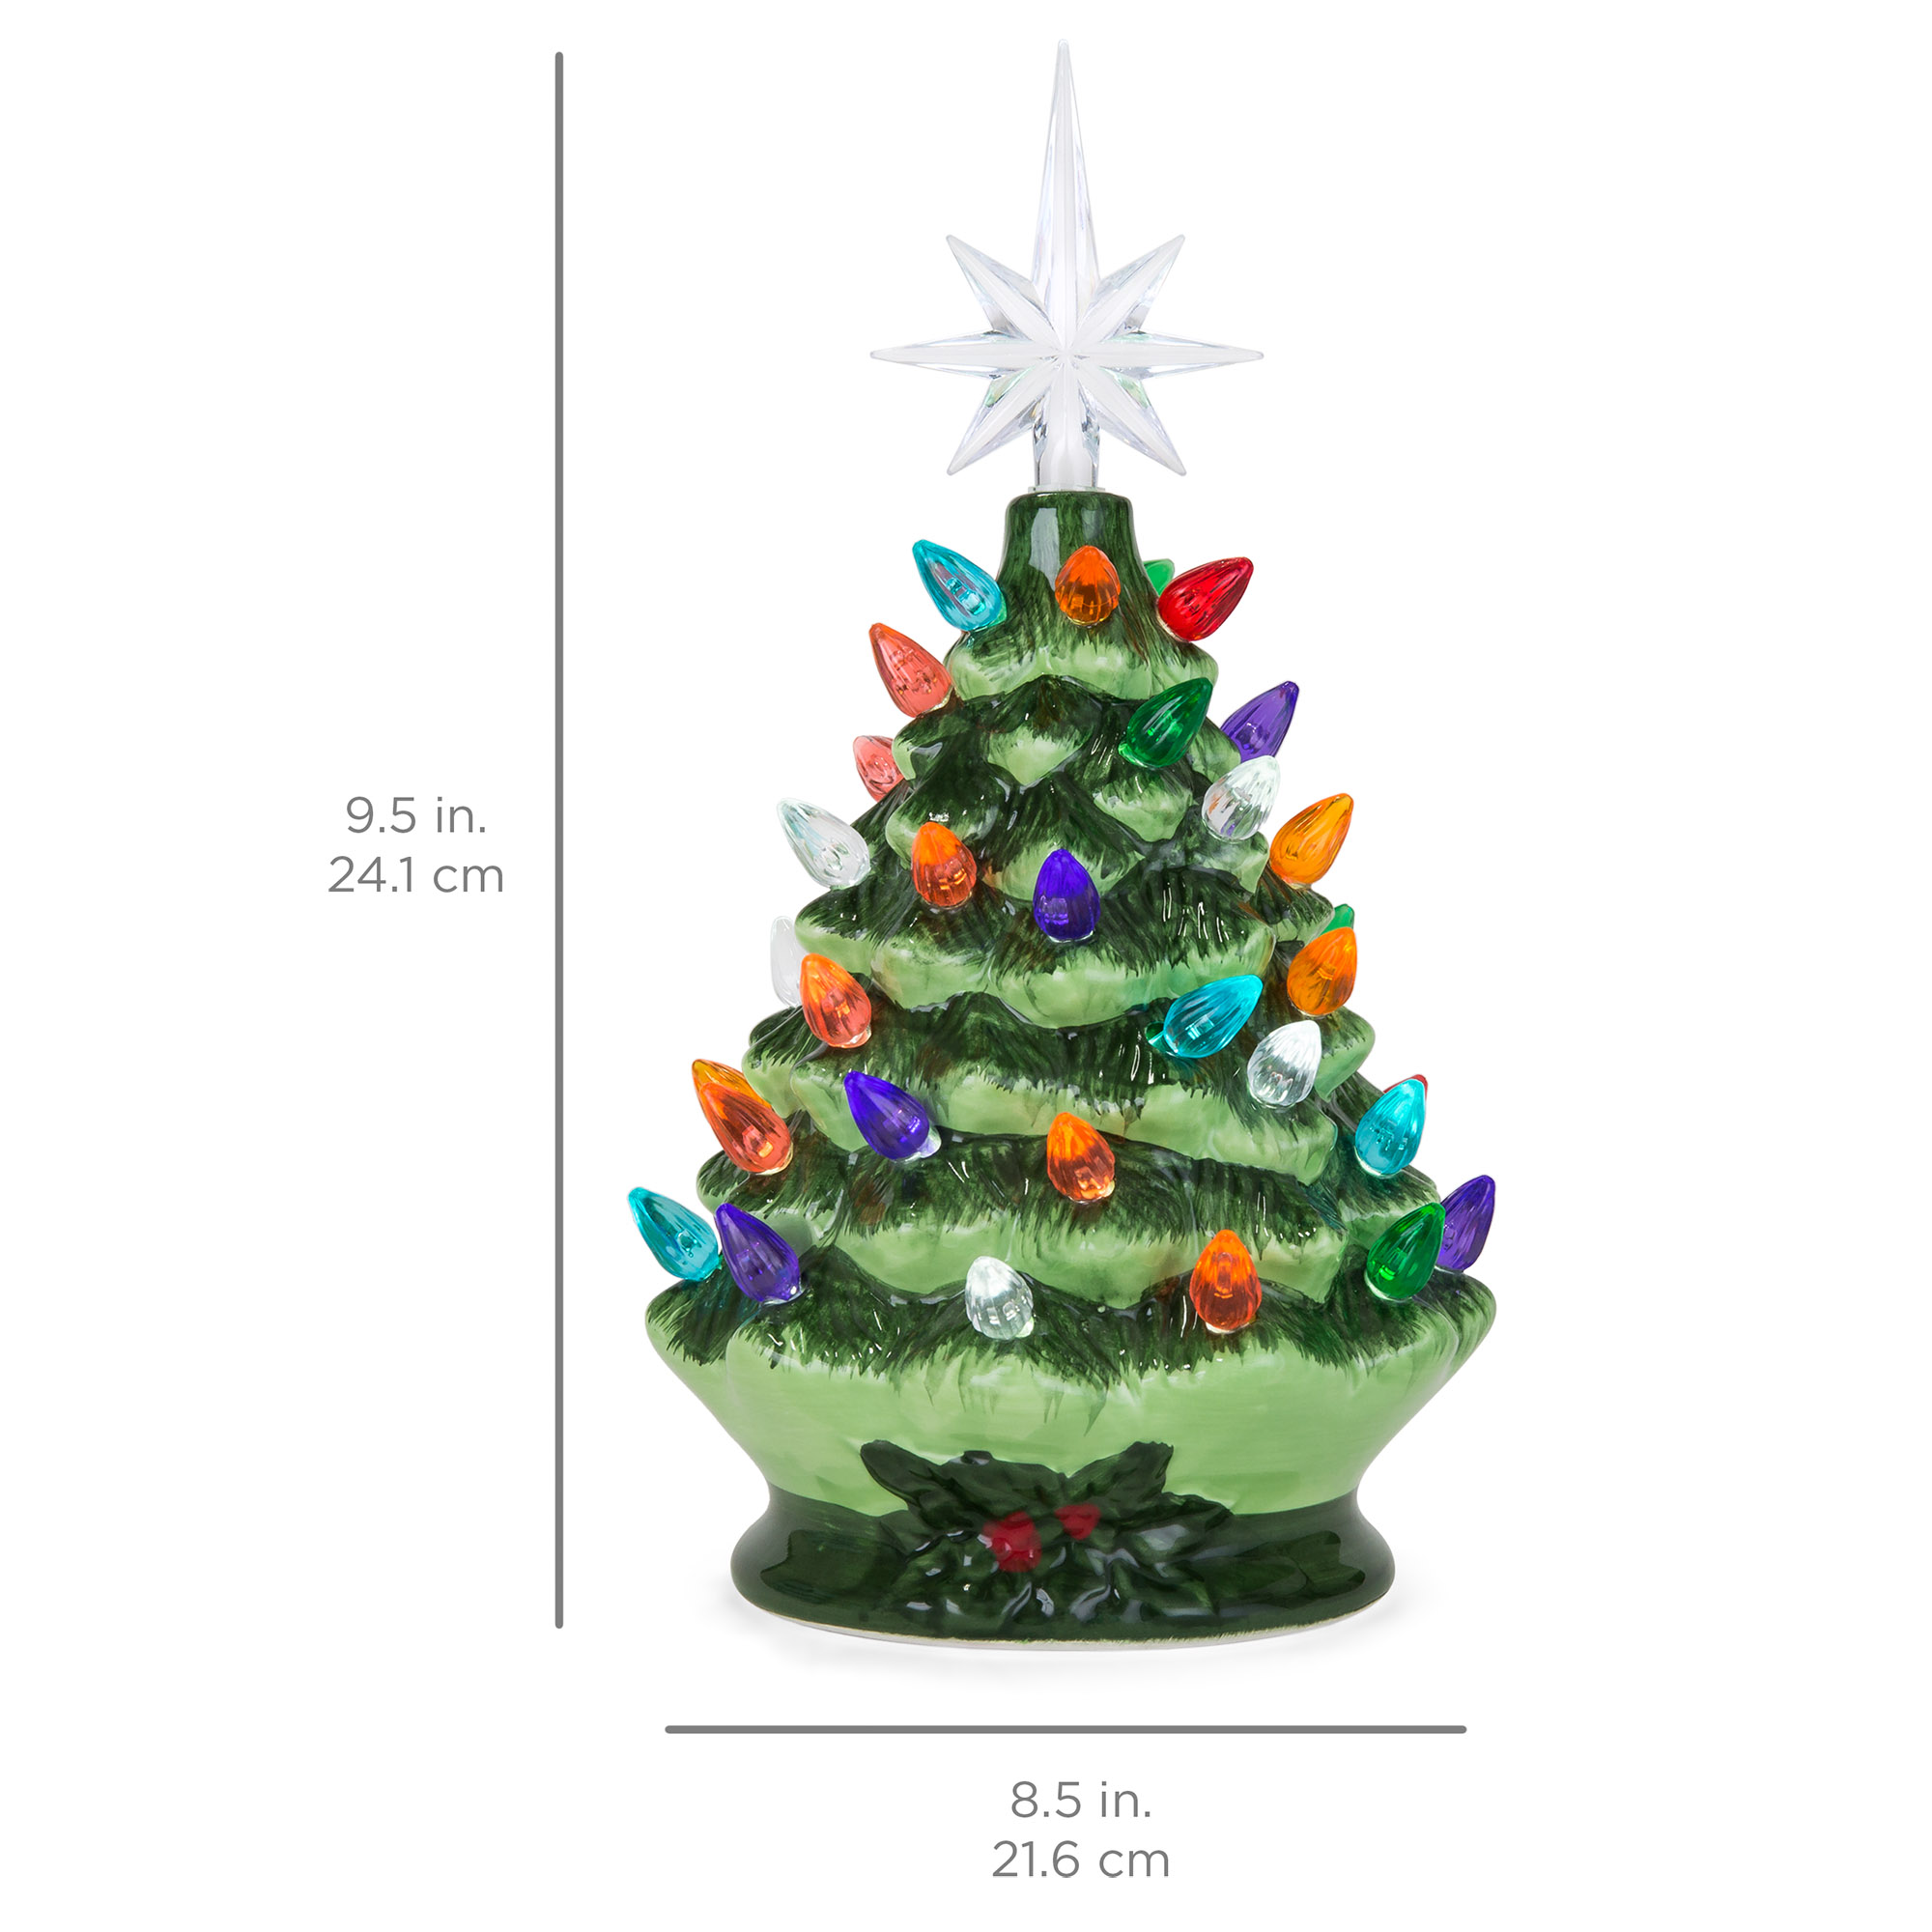 Best Choice Products 9 5in Pre Lit Hand Painted Ceramic Tabletop Artificial Christmas Tree Festive Holiday Decor W Multicolored Lights 3 Star